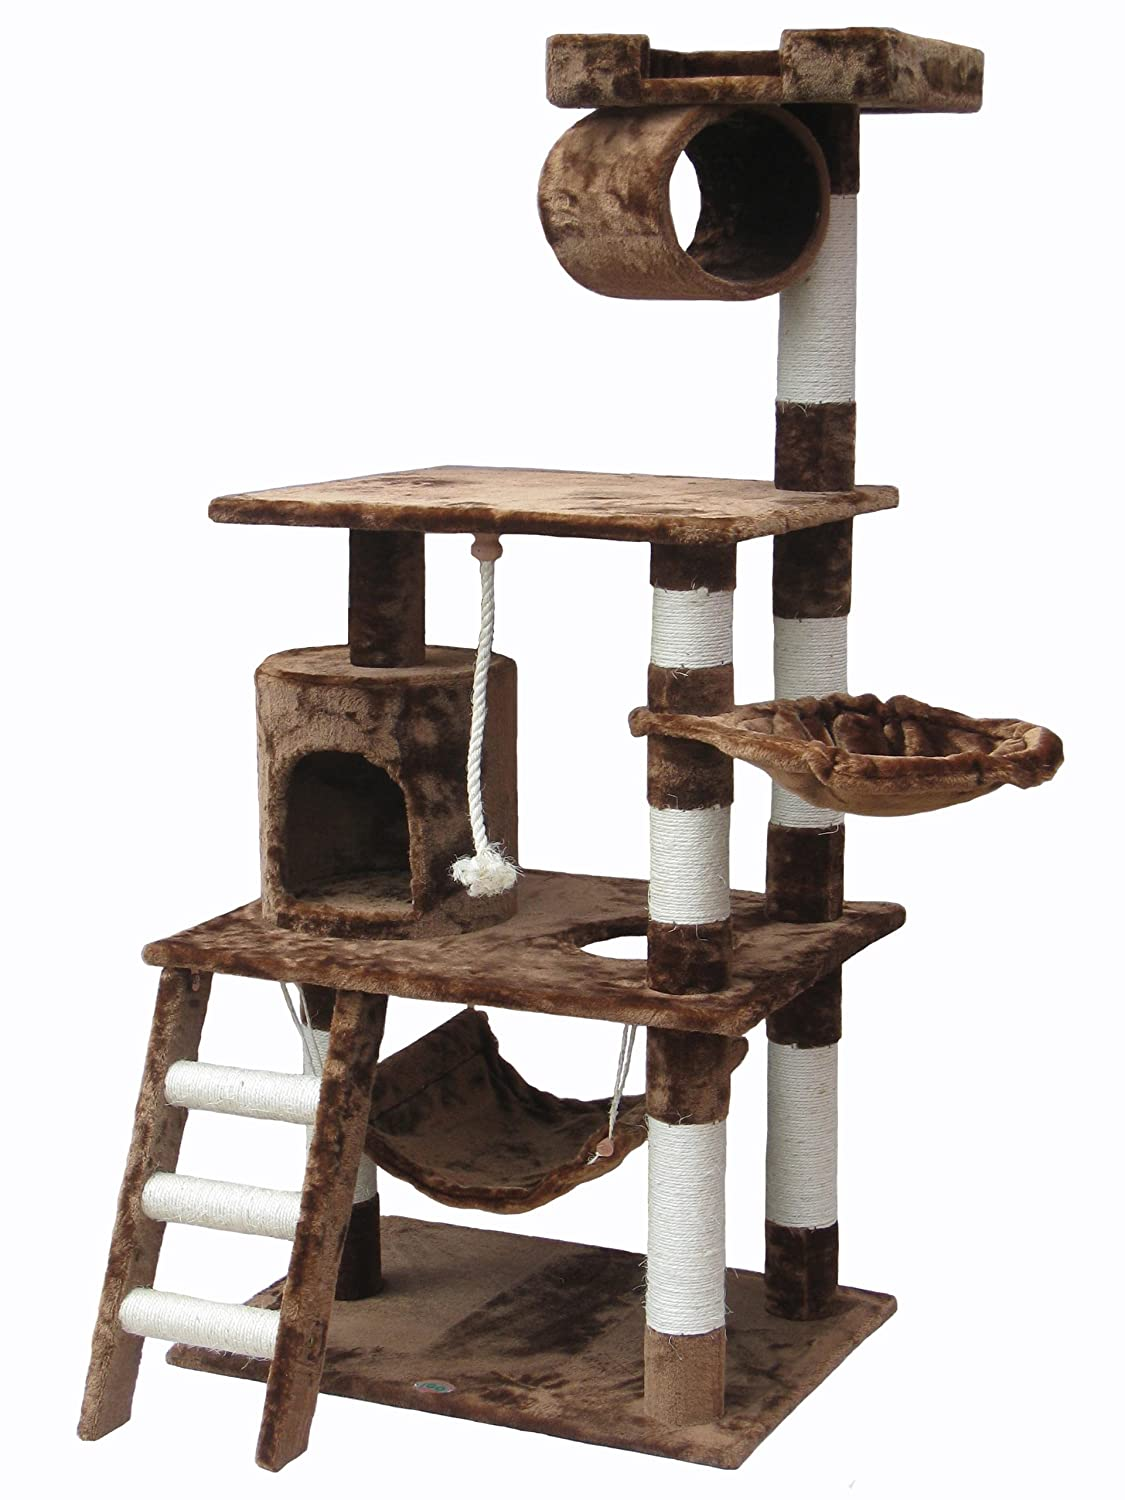 go pet club f inch cat tree condo furniture brown amazonca  - go pet club f inch cat tree condo furniture brown amazonca petsupplies